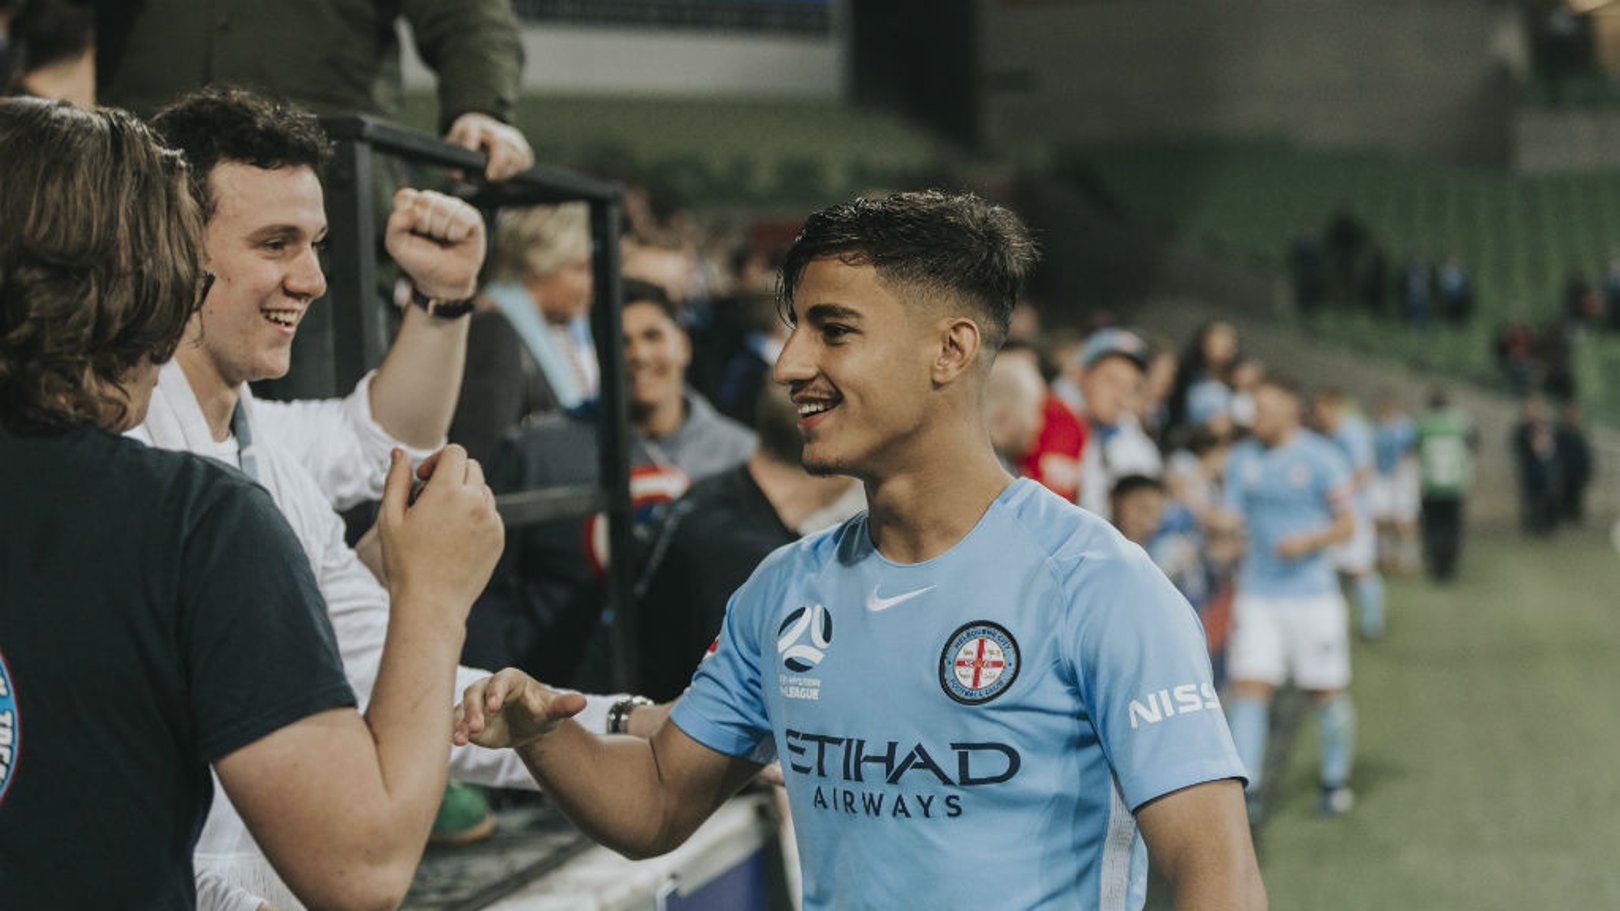 DEAL DONE: City are delighted to announce the signing of Daniel Arzani from Melbourne City FC.